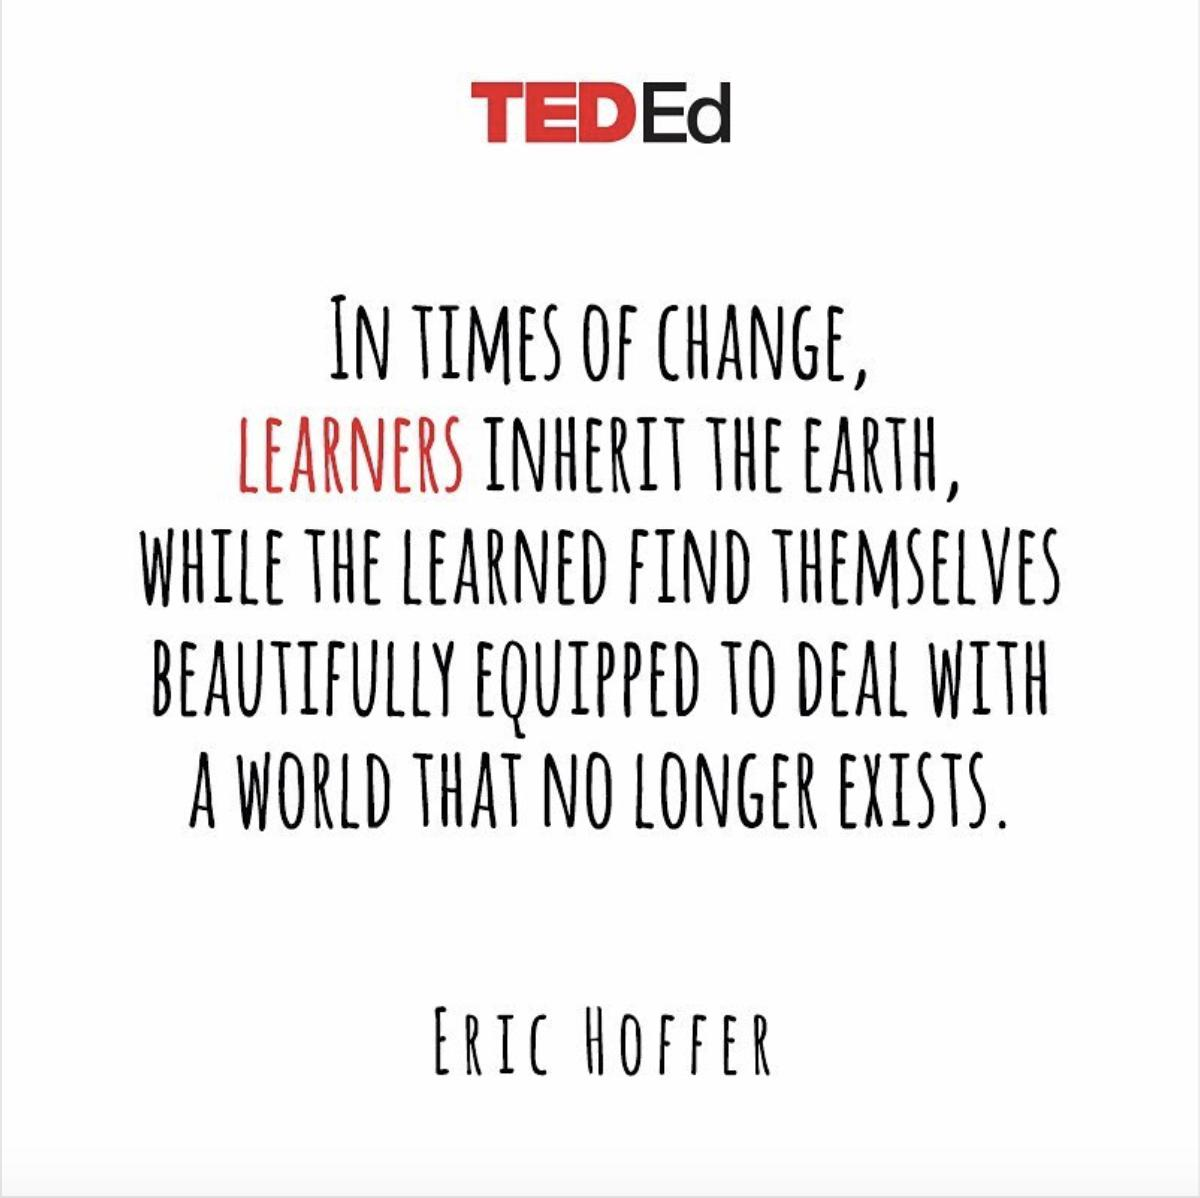 We should strive to be lifelong learners.